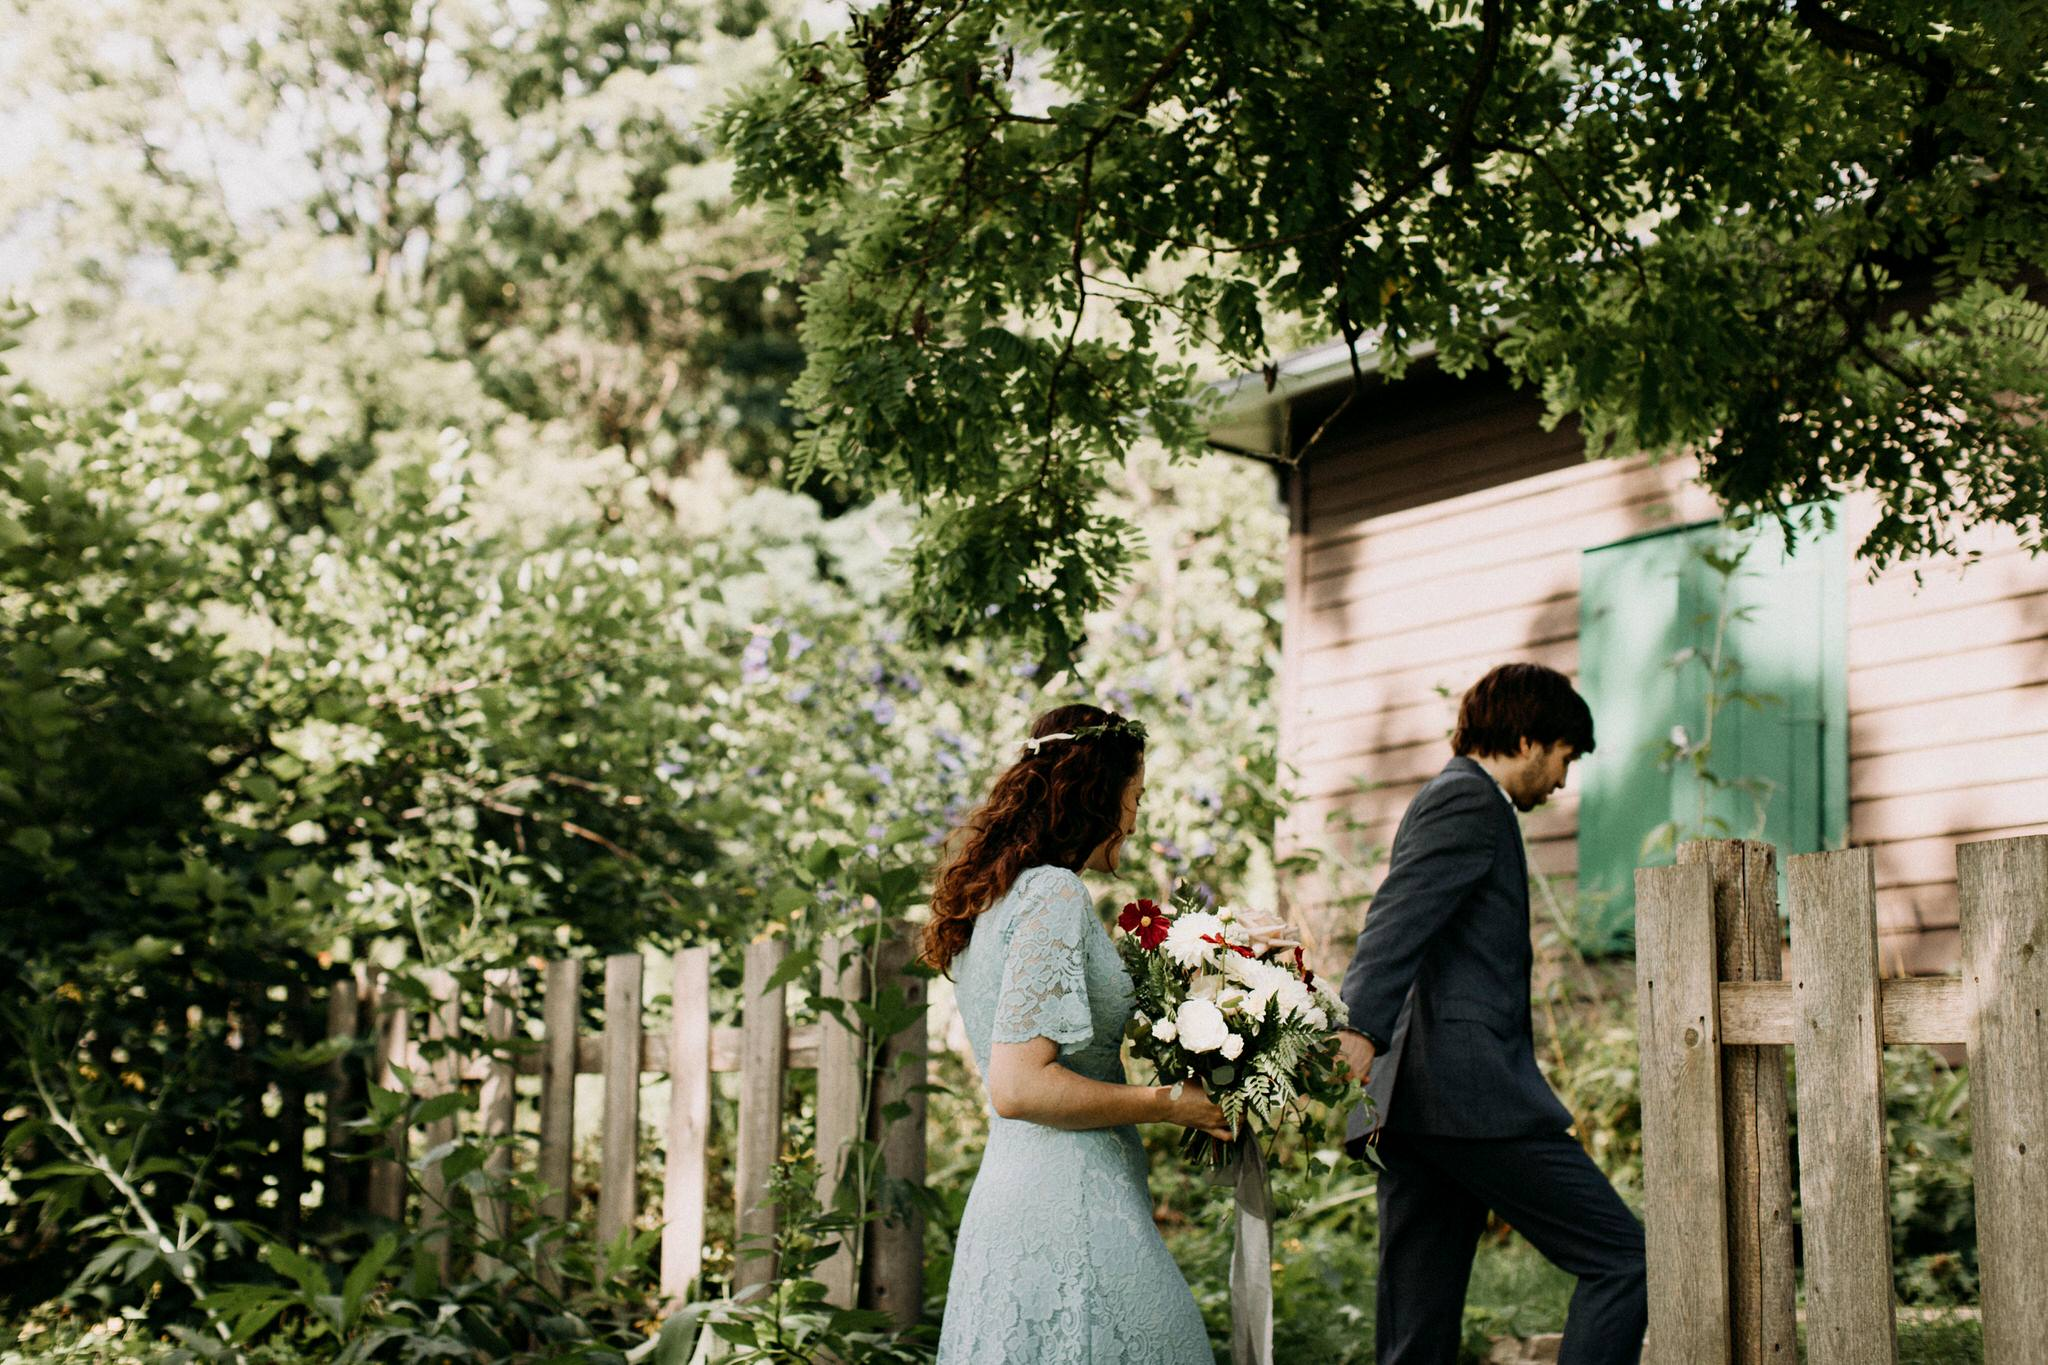 Merchants of Green Coffee Wedding - walking through the garden